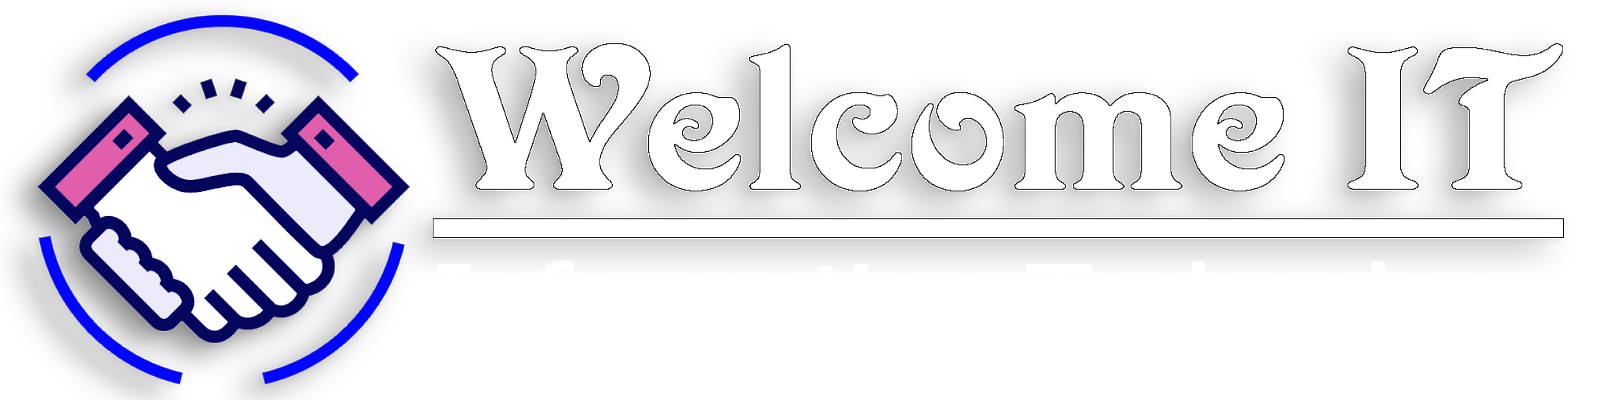 Wlcit | Welcome Information Technology